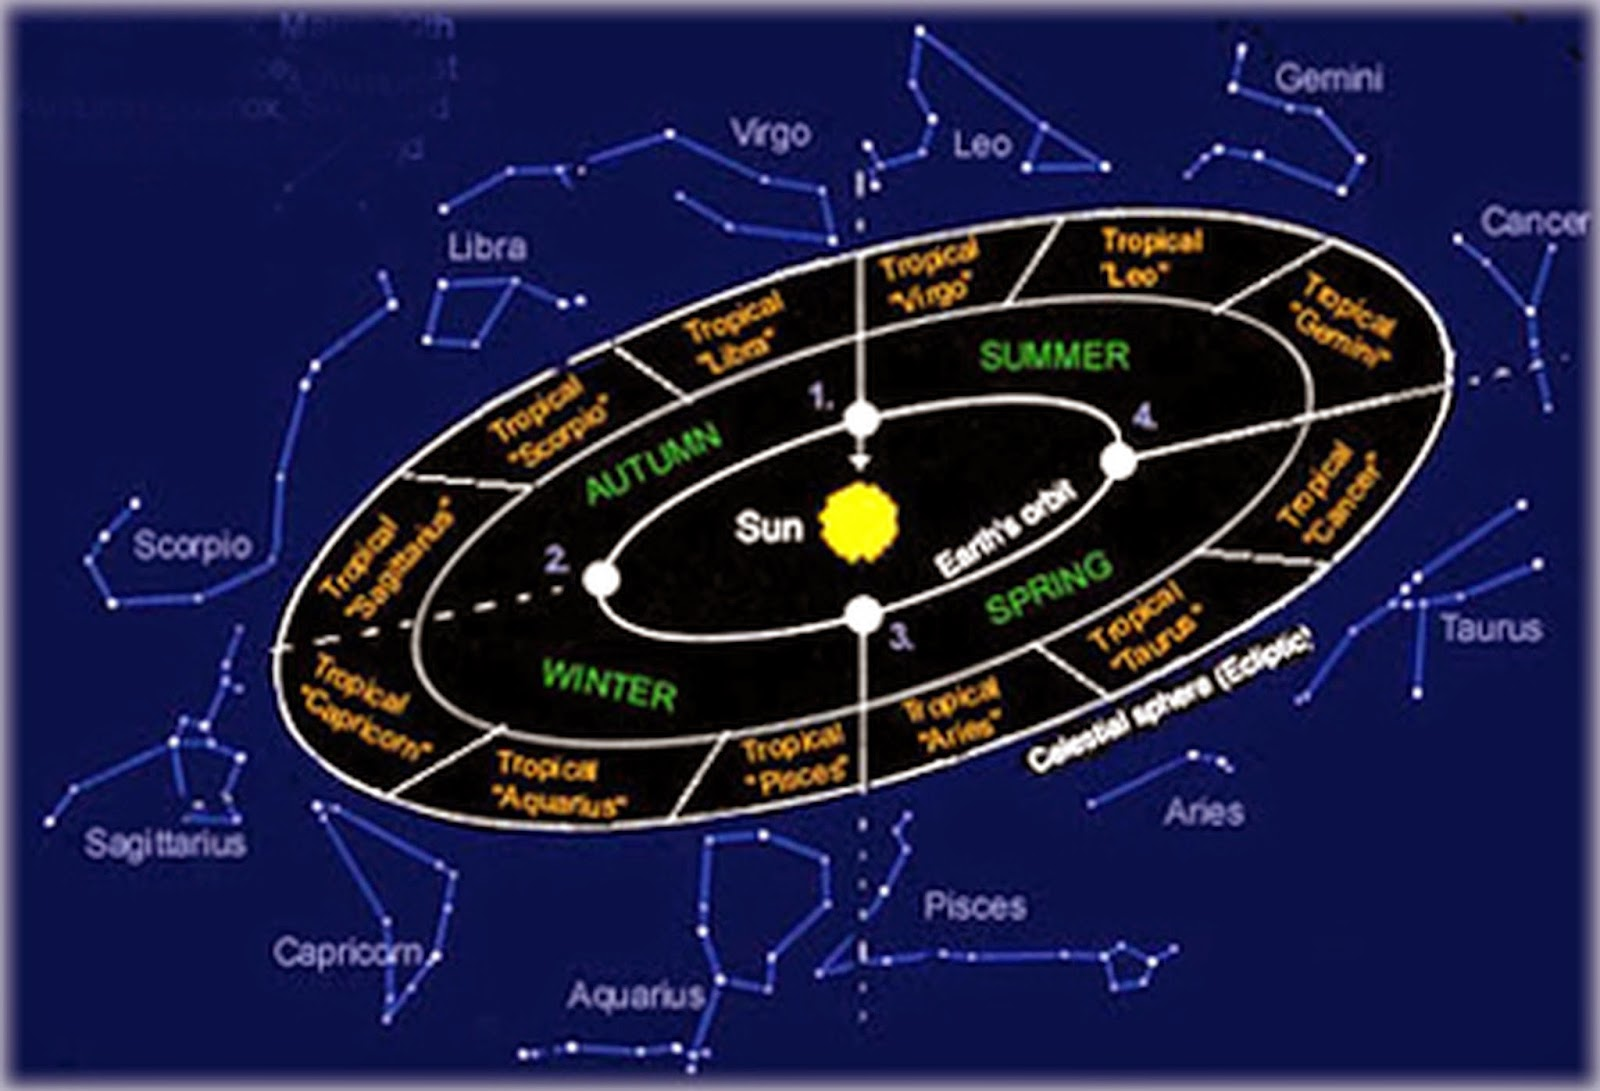 Know your hindu religion tamil astrology inner wheel tropical zodiac outer wheel sidereal zodiac source you are who you are nvjuhfo Choice Image